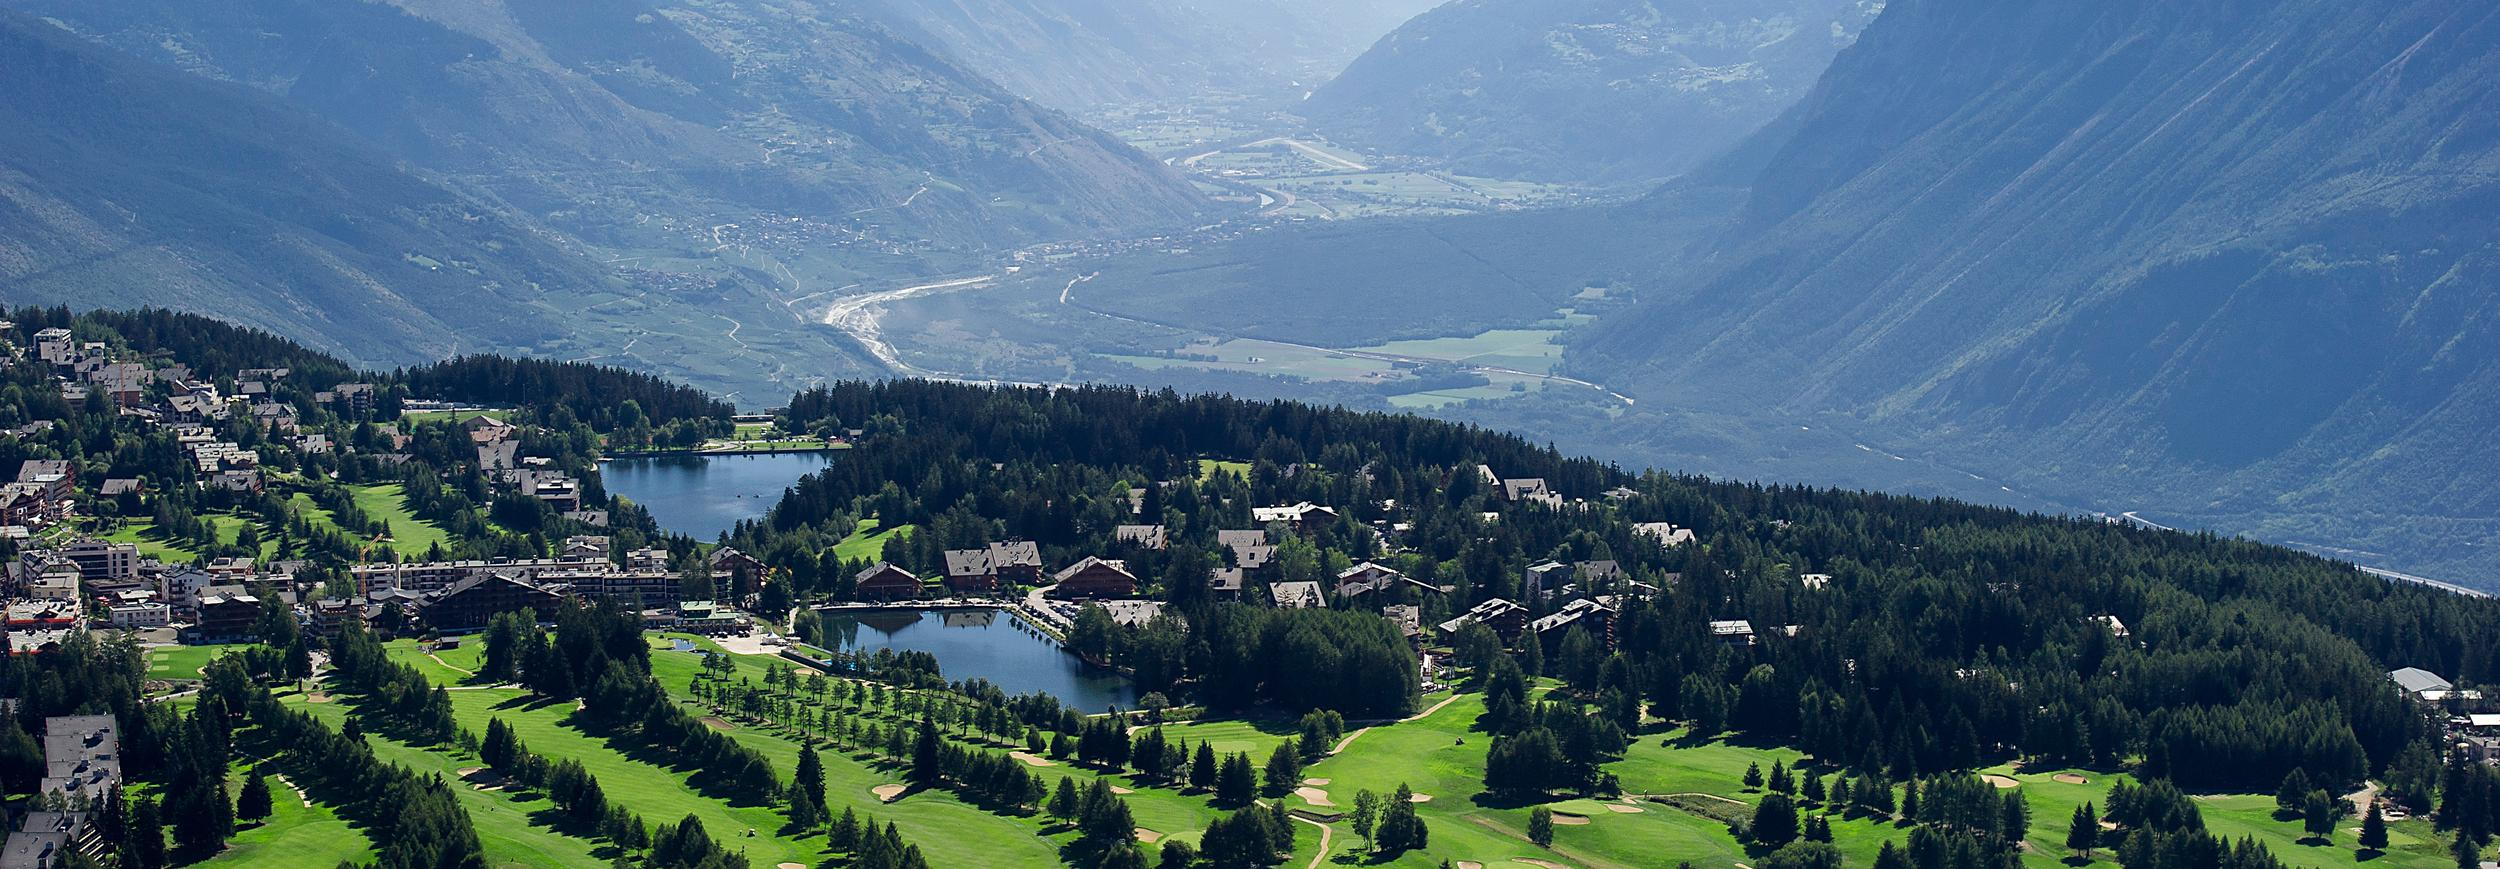 Why Crans-Montana?